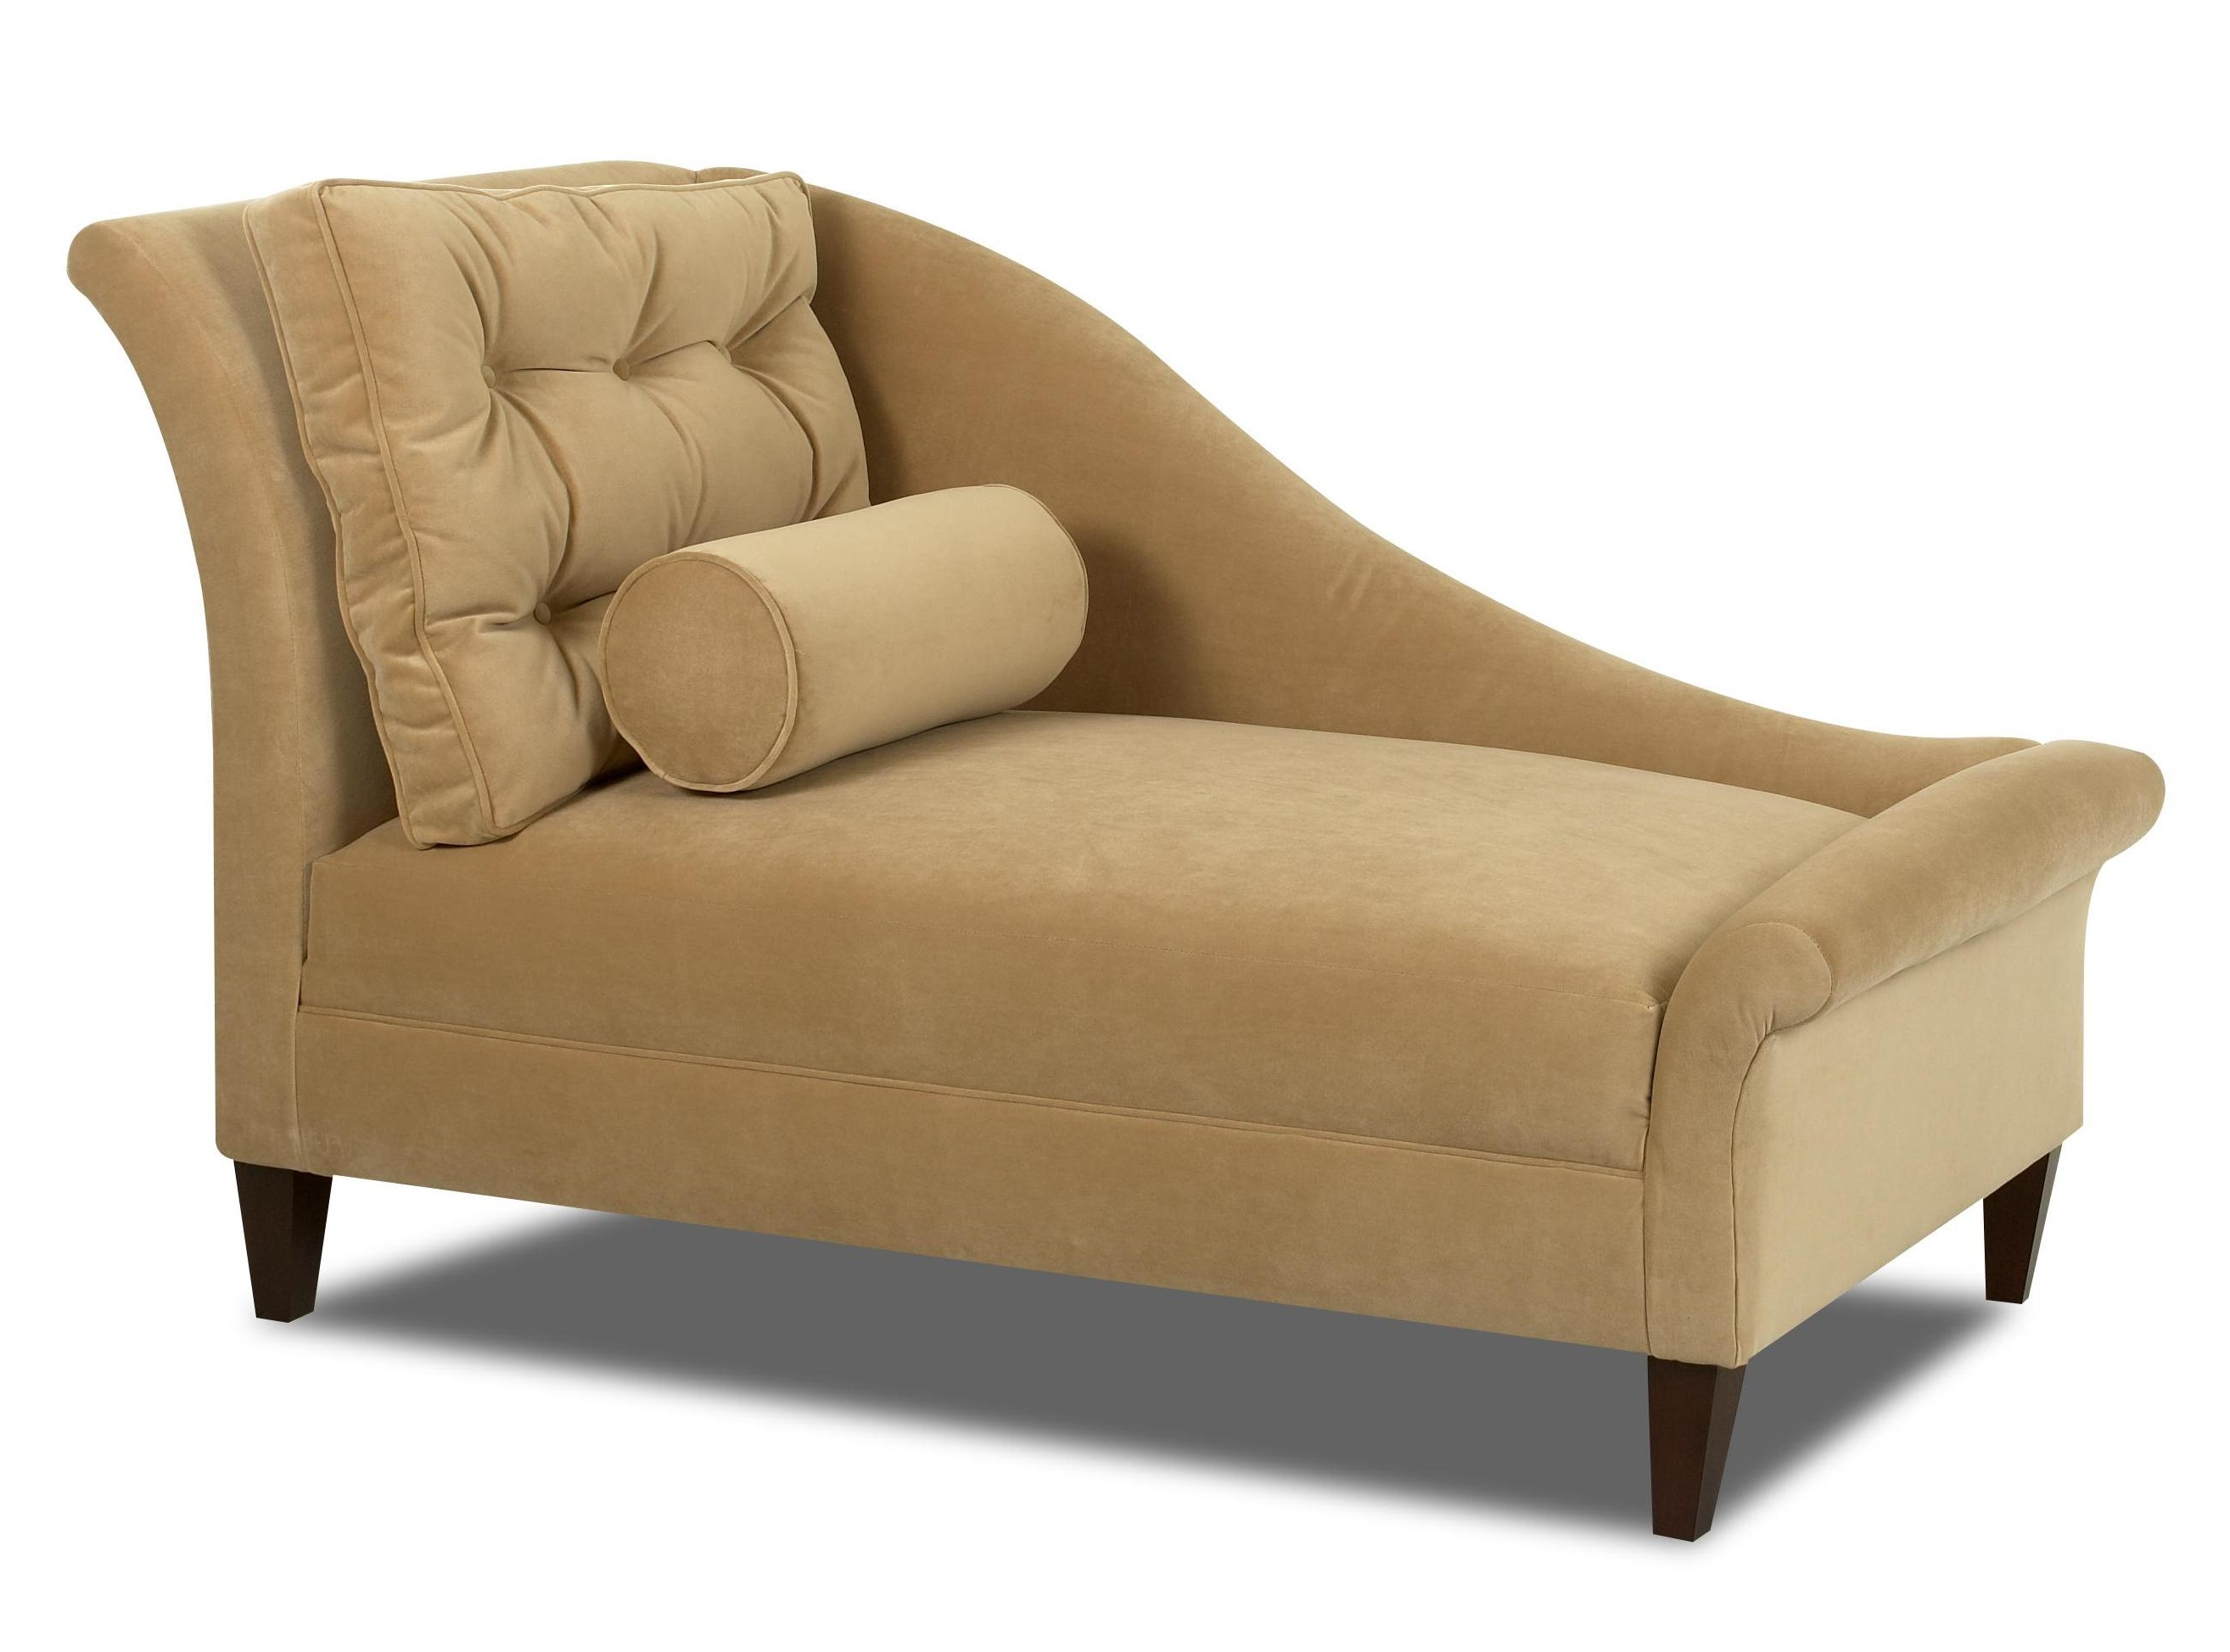 Convertible Chair : Lounge Bedroom Chaise Longue Curved Chaise For Preferred Narrow Chaise Lounge Chairs (View 13 of 15)